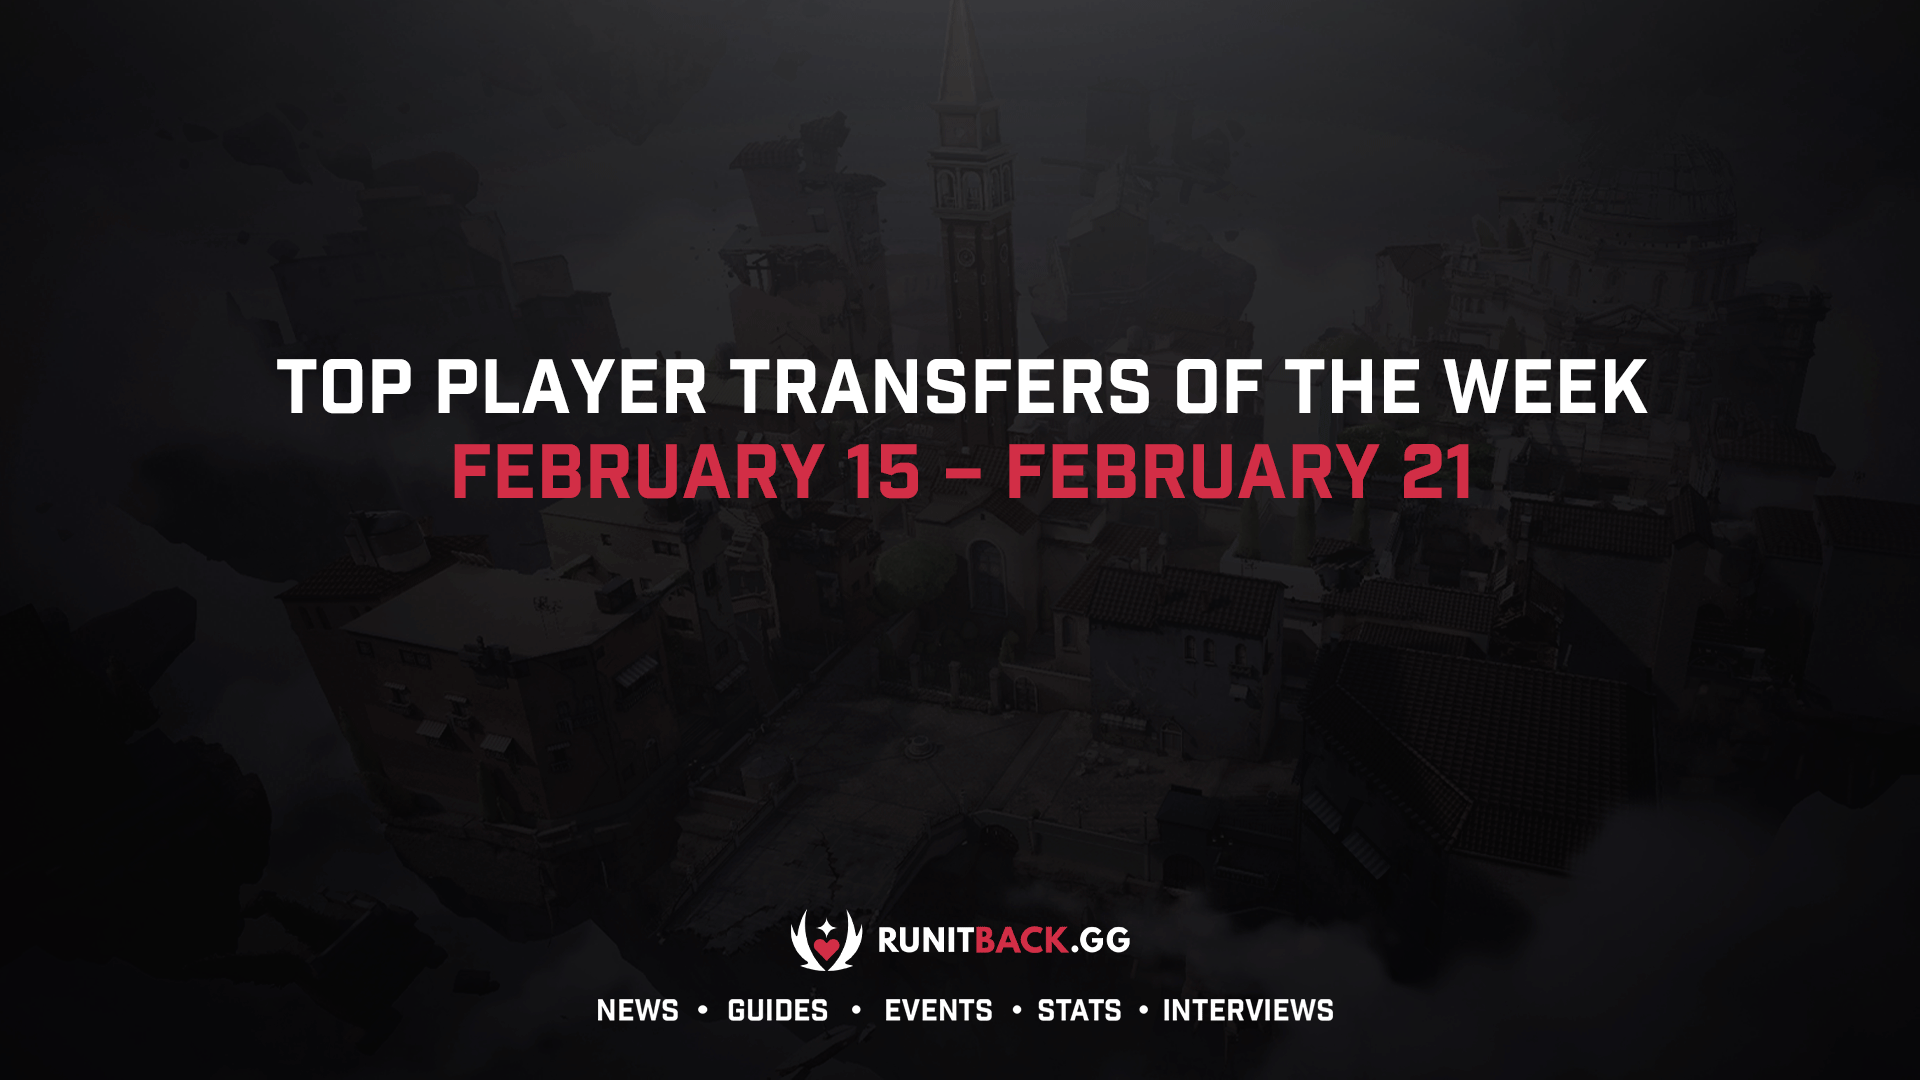 Top Player Transfers of the Week: February 15 – February 21